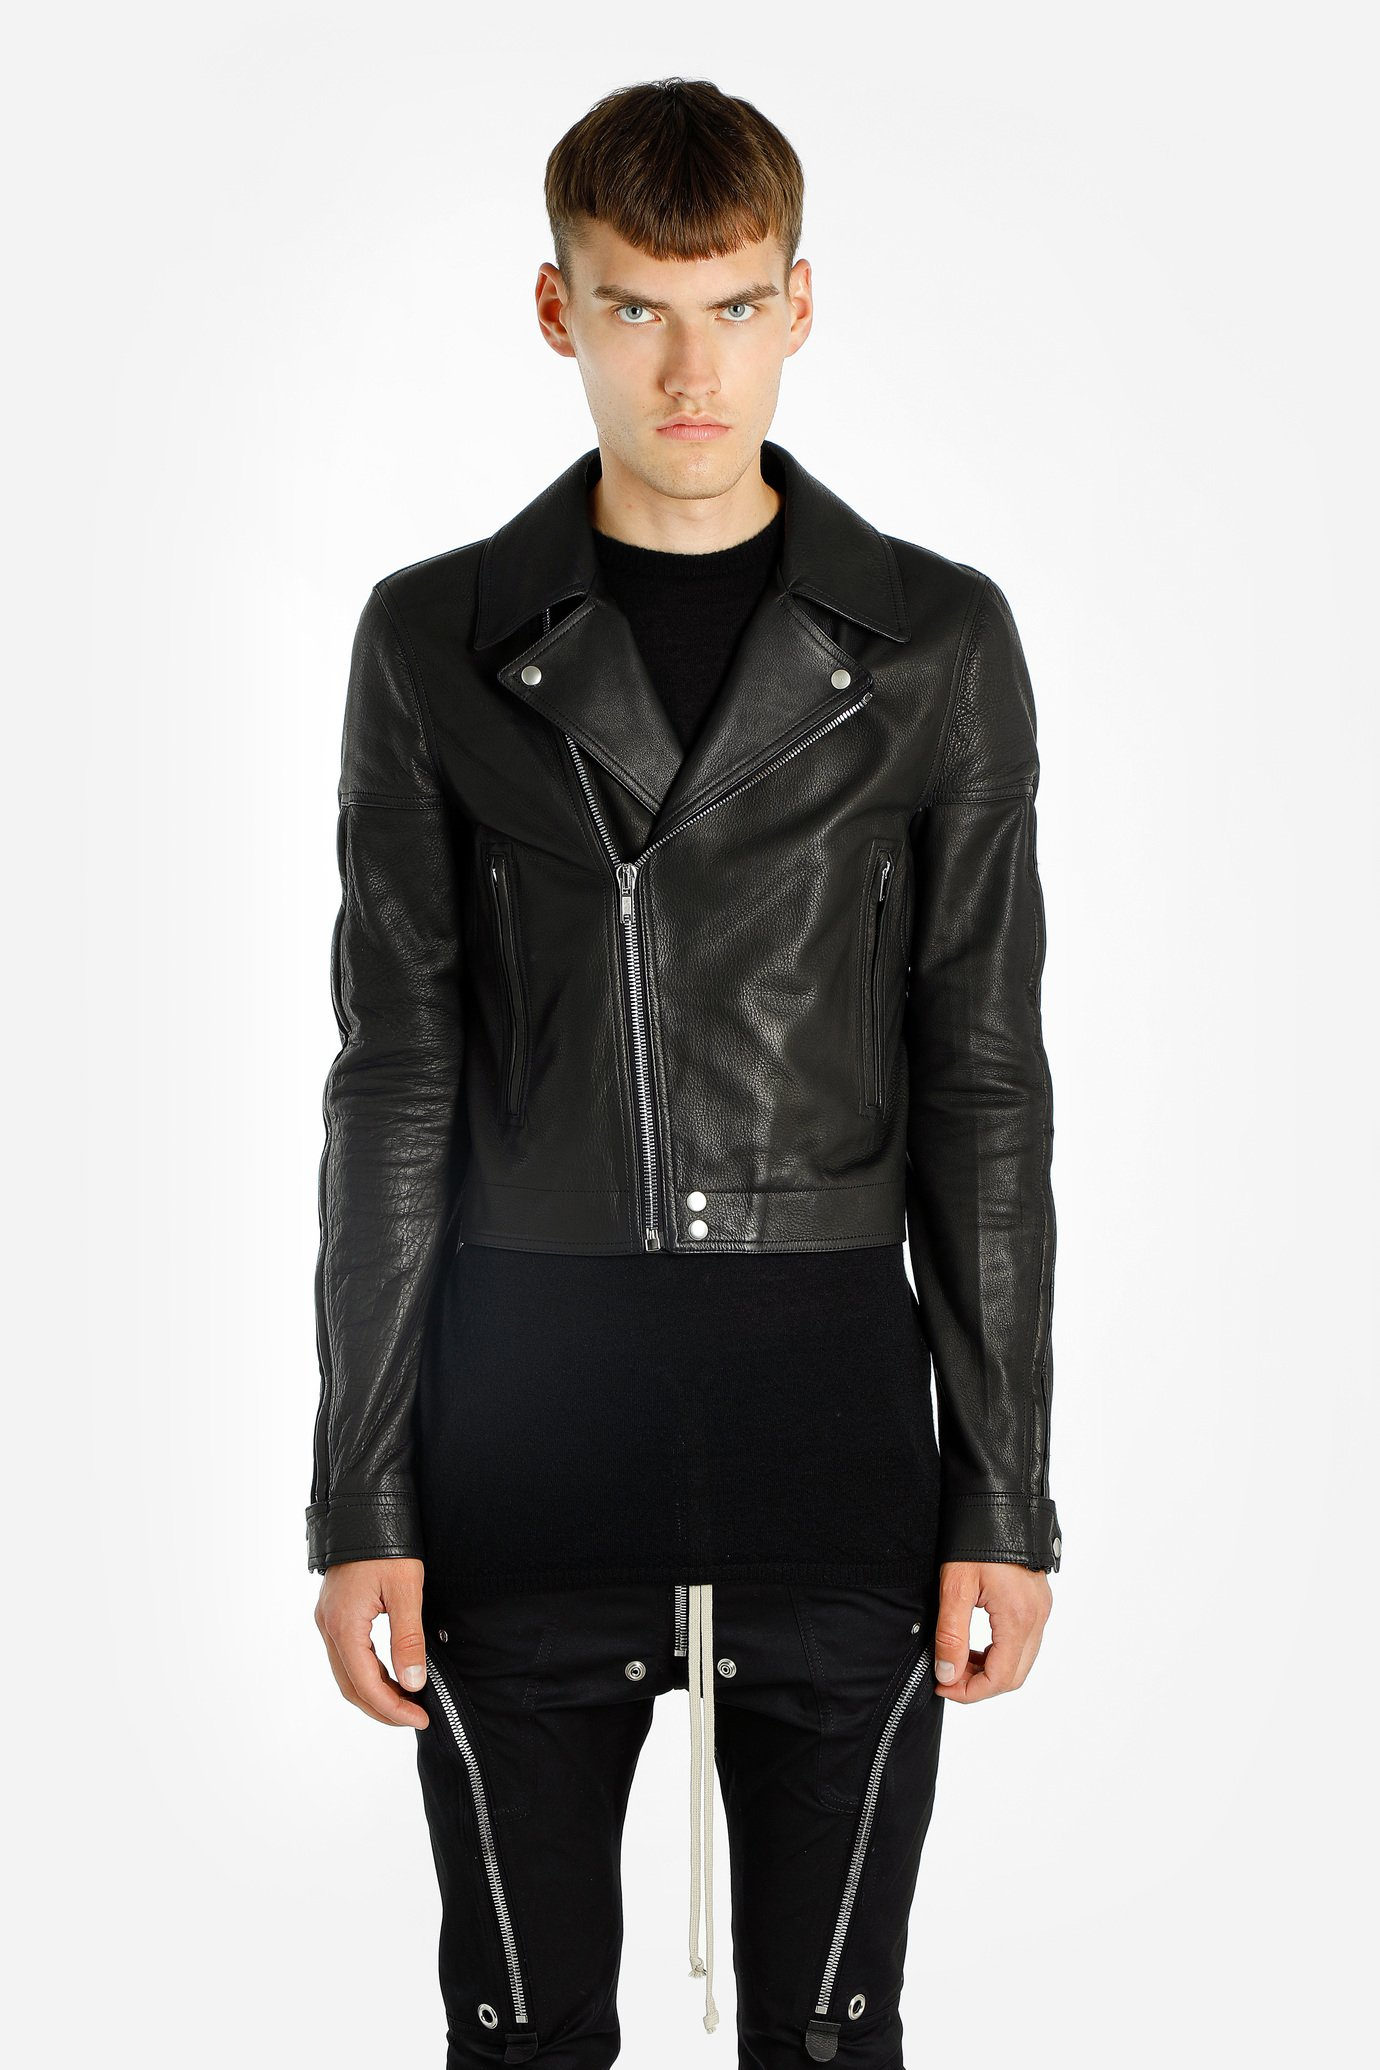 Image of Rick Owens Leather Jackets